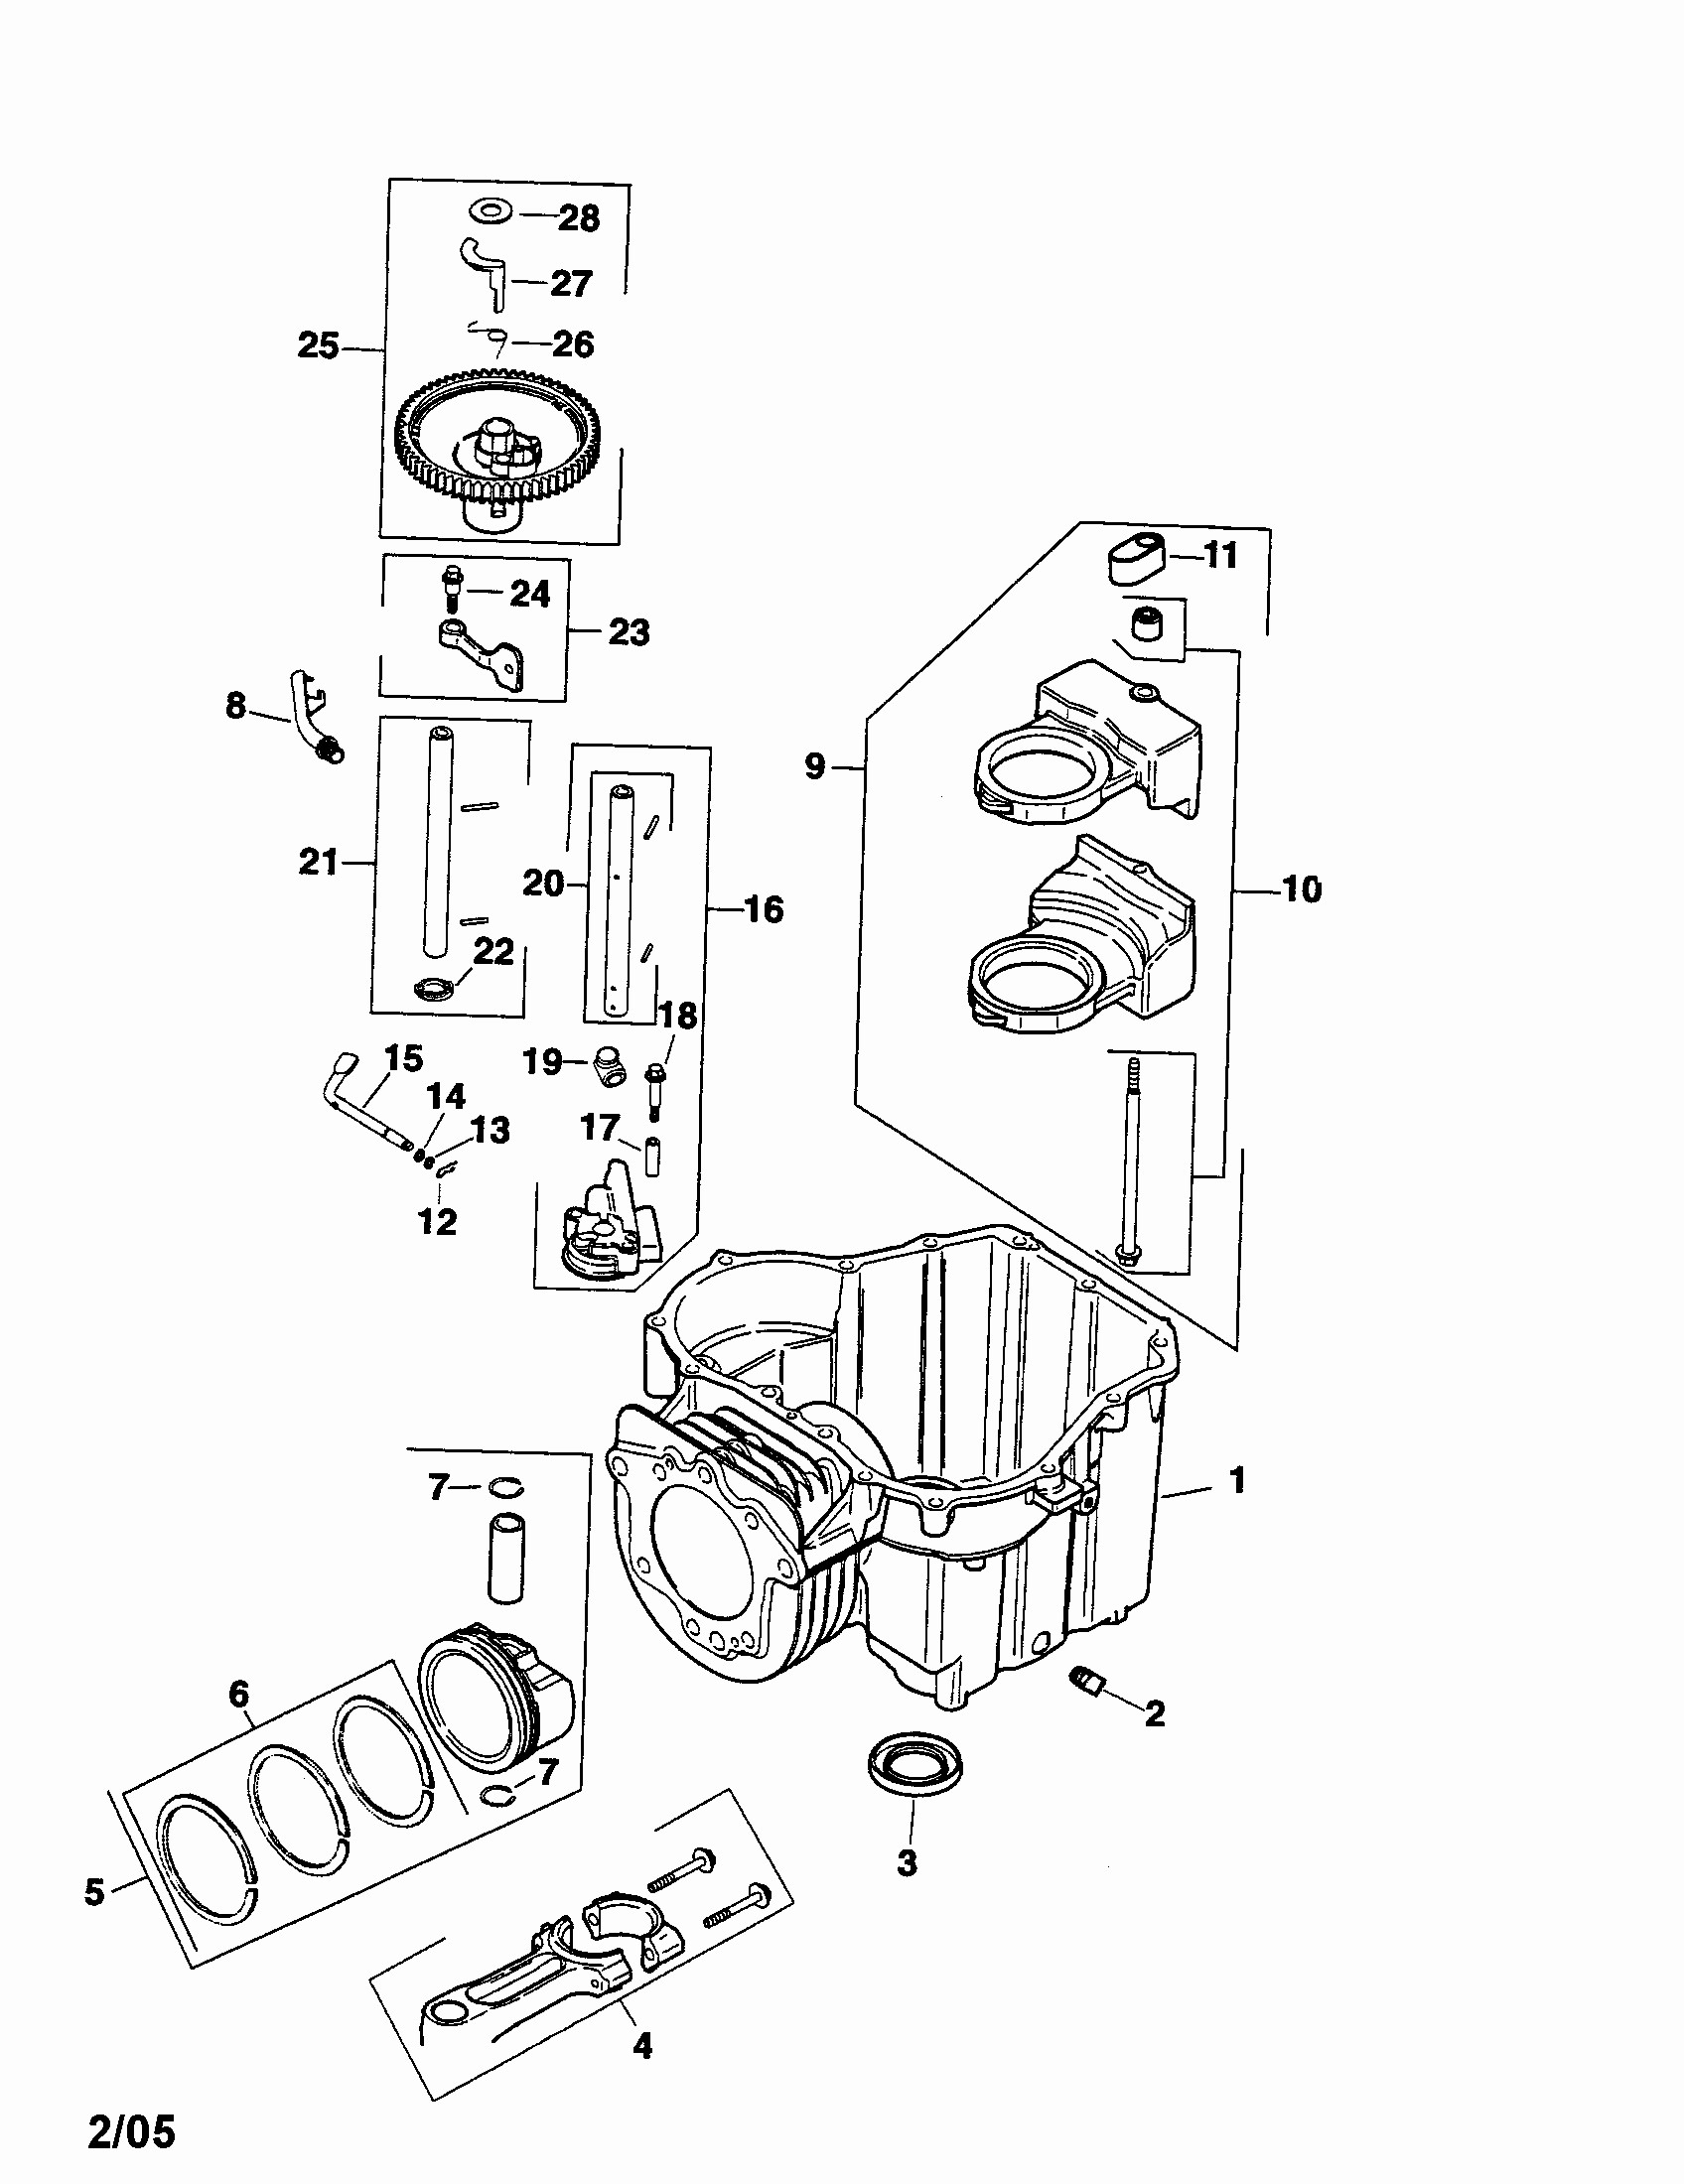 Kohler K301 Engine Diagram Kohler Engine Parts Diagram New Kohler Engine Electrical Diagram Of Kohler K301 Engine Diagram